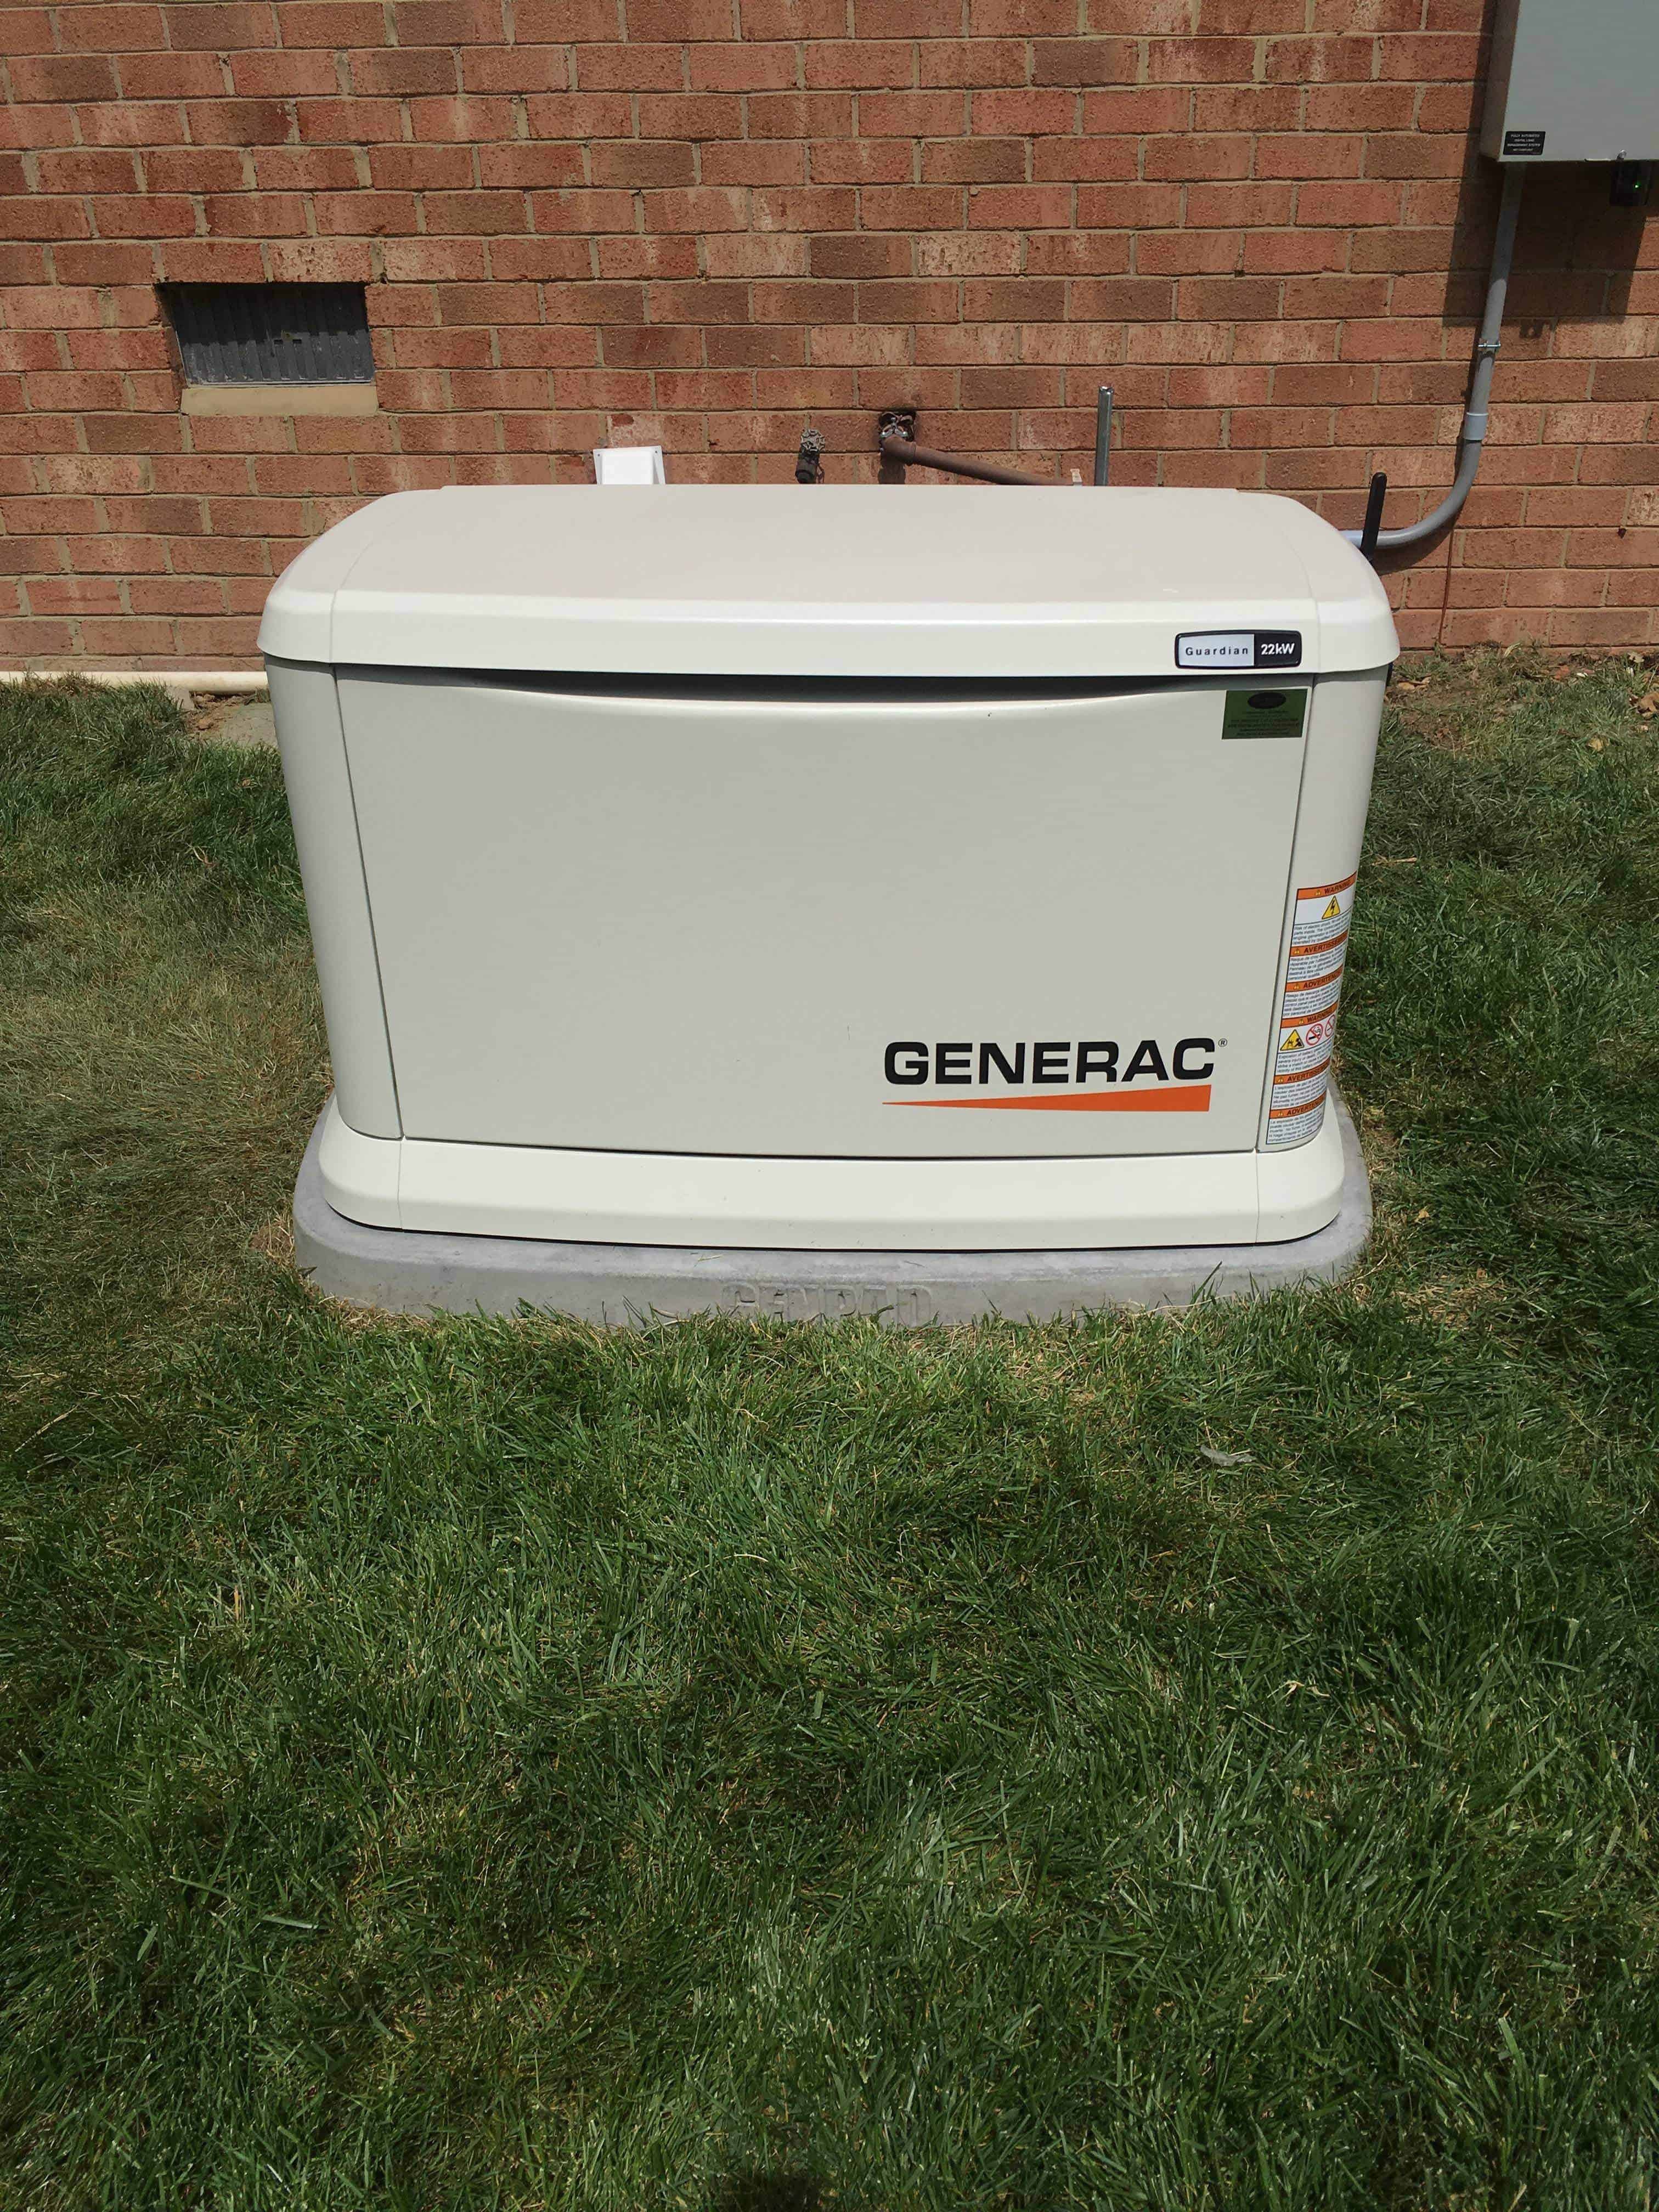 Automatic Standby Generac Generator Chesterfield County